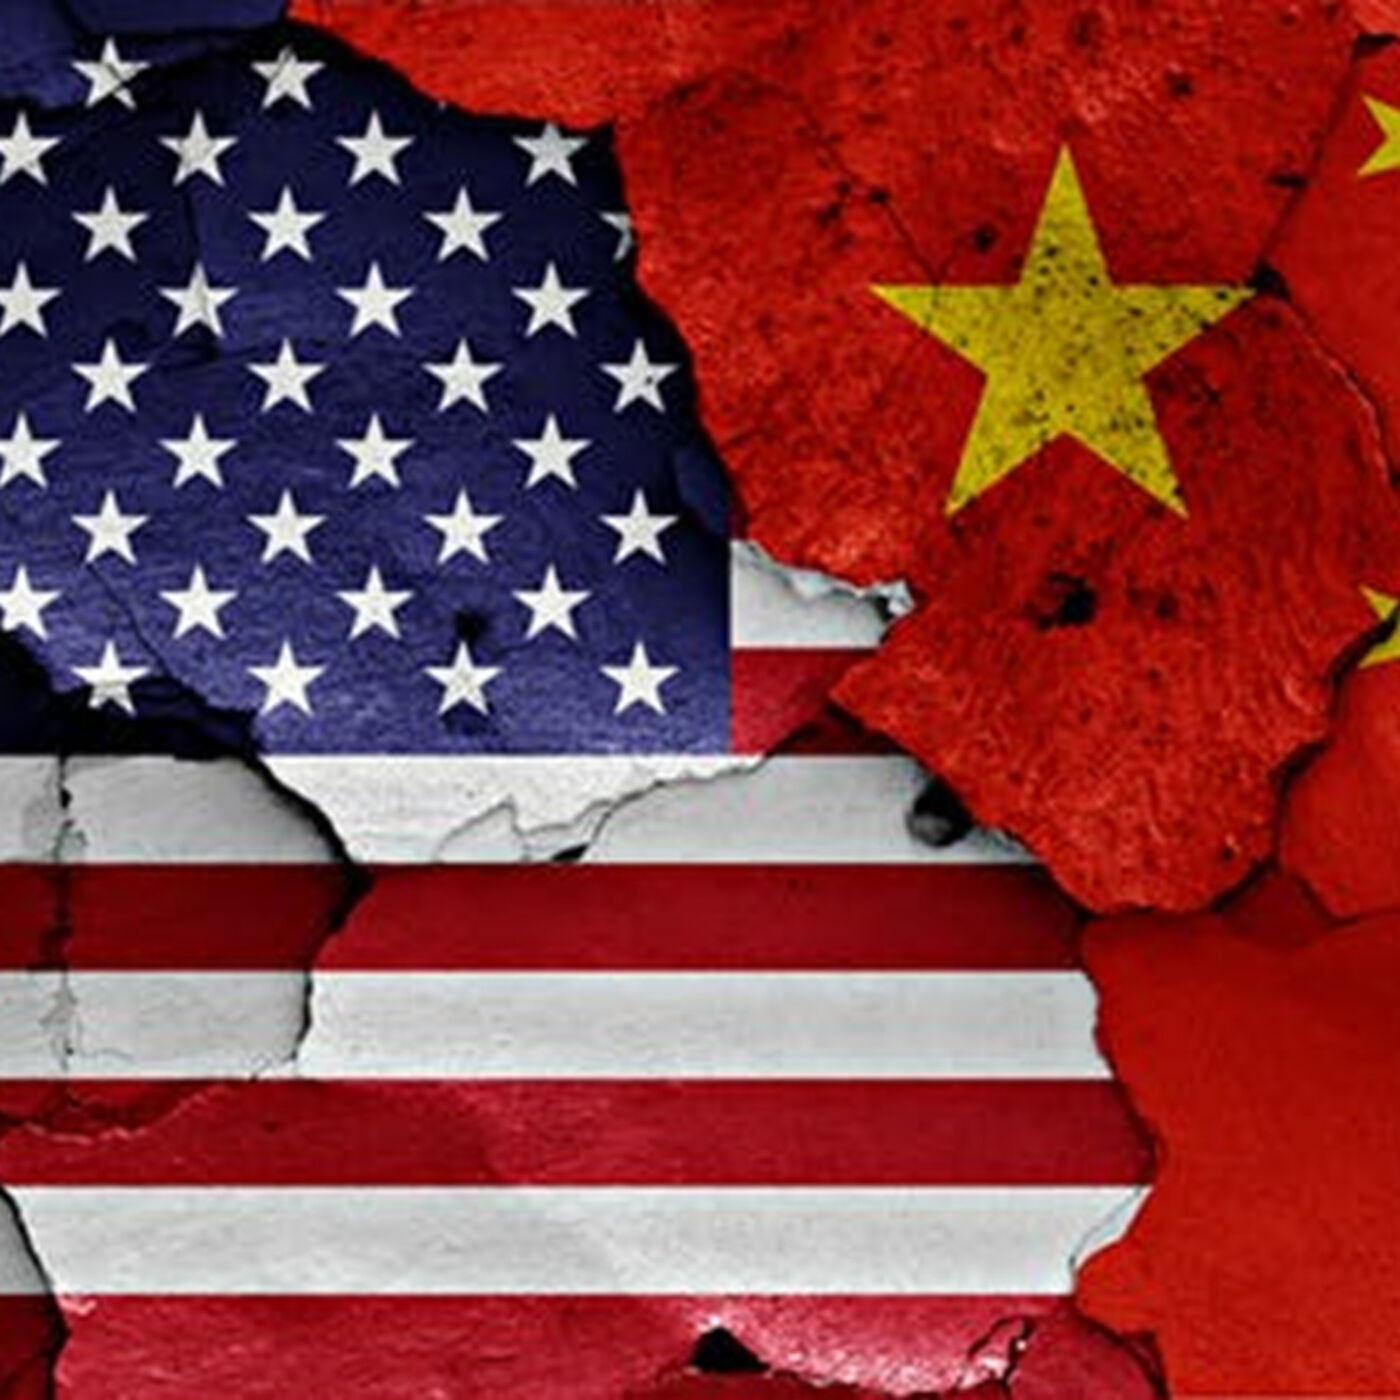 Episode 1. Implications Of The Trade War With China On Apparel